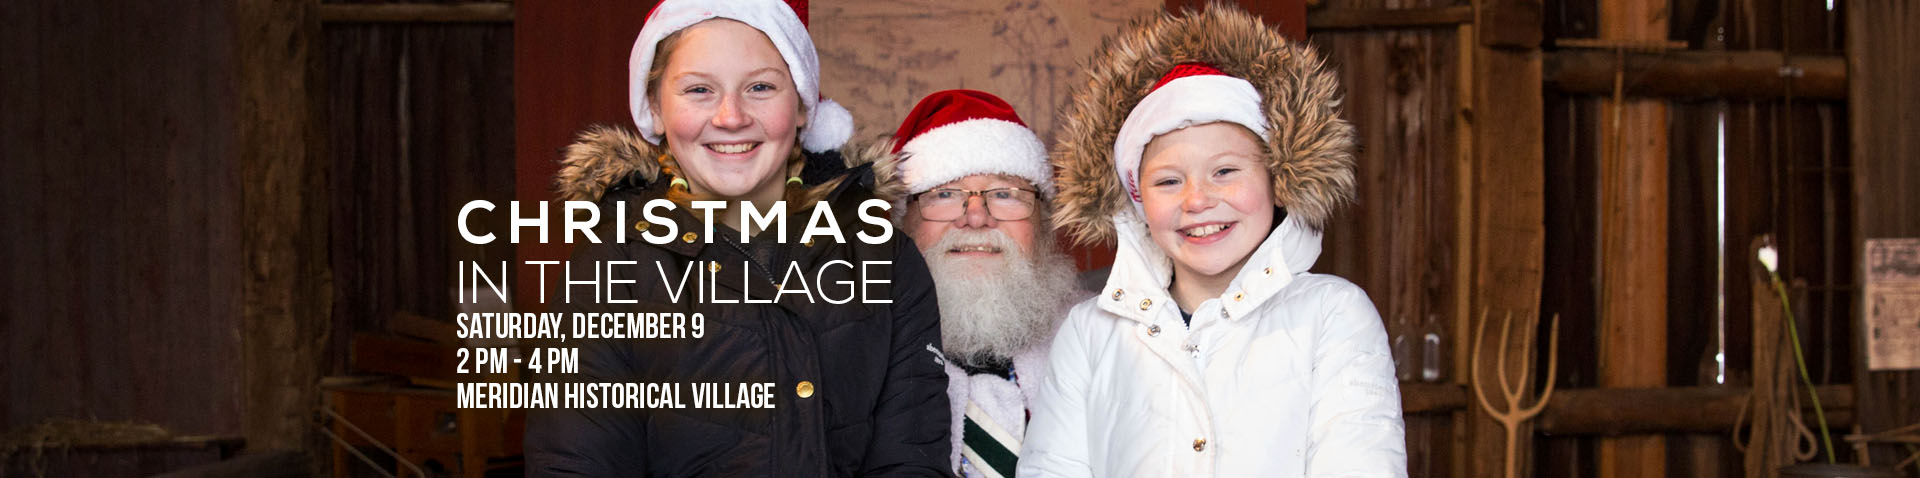 Christmas in the Village 2018